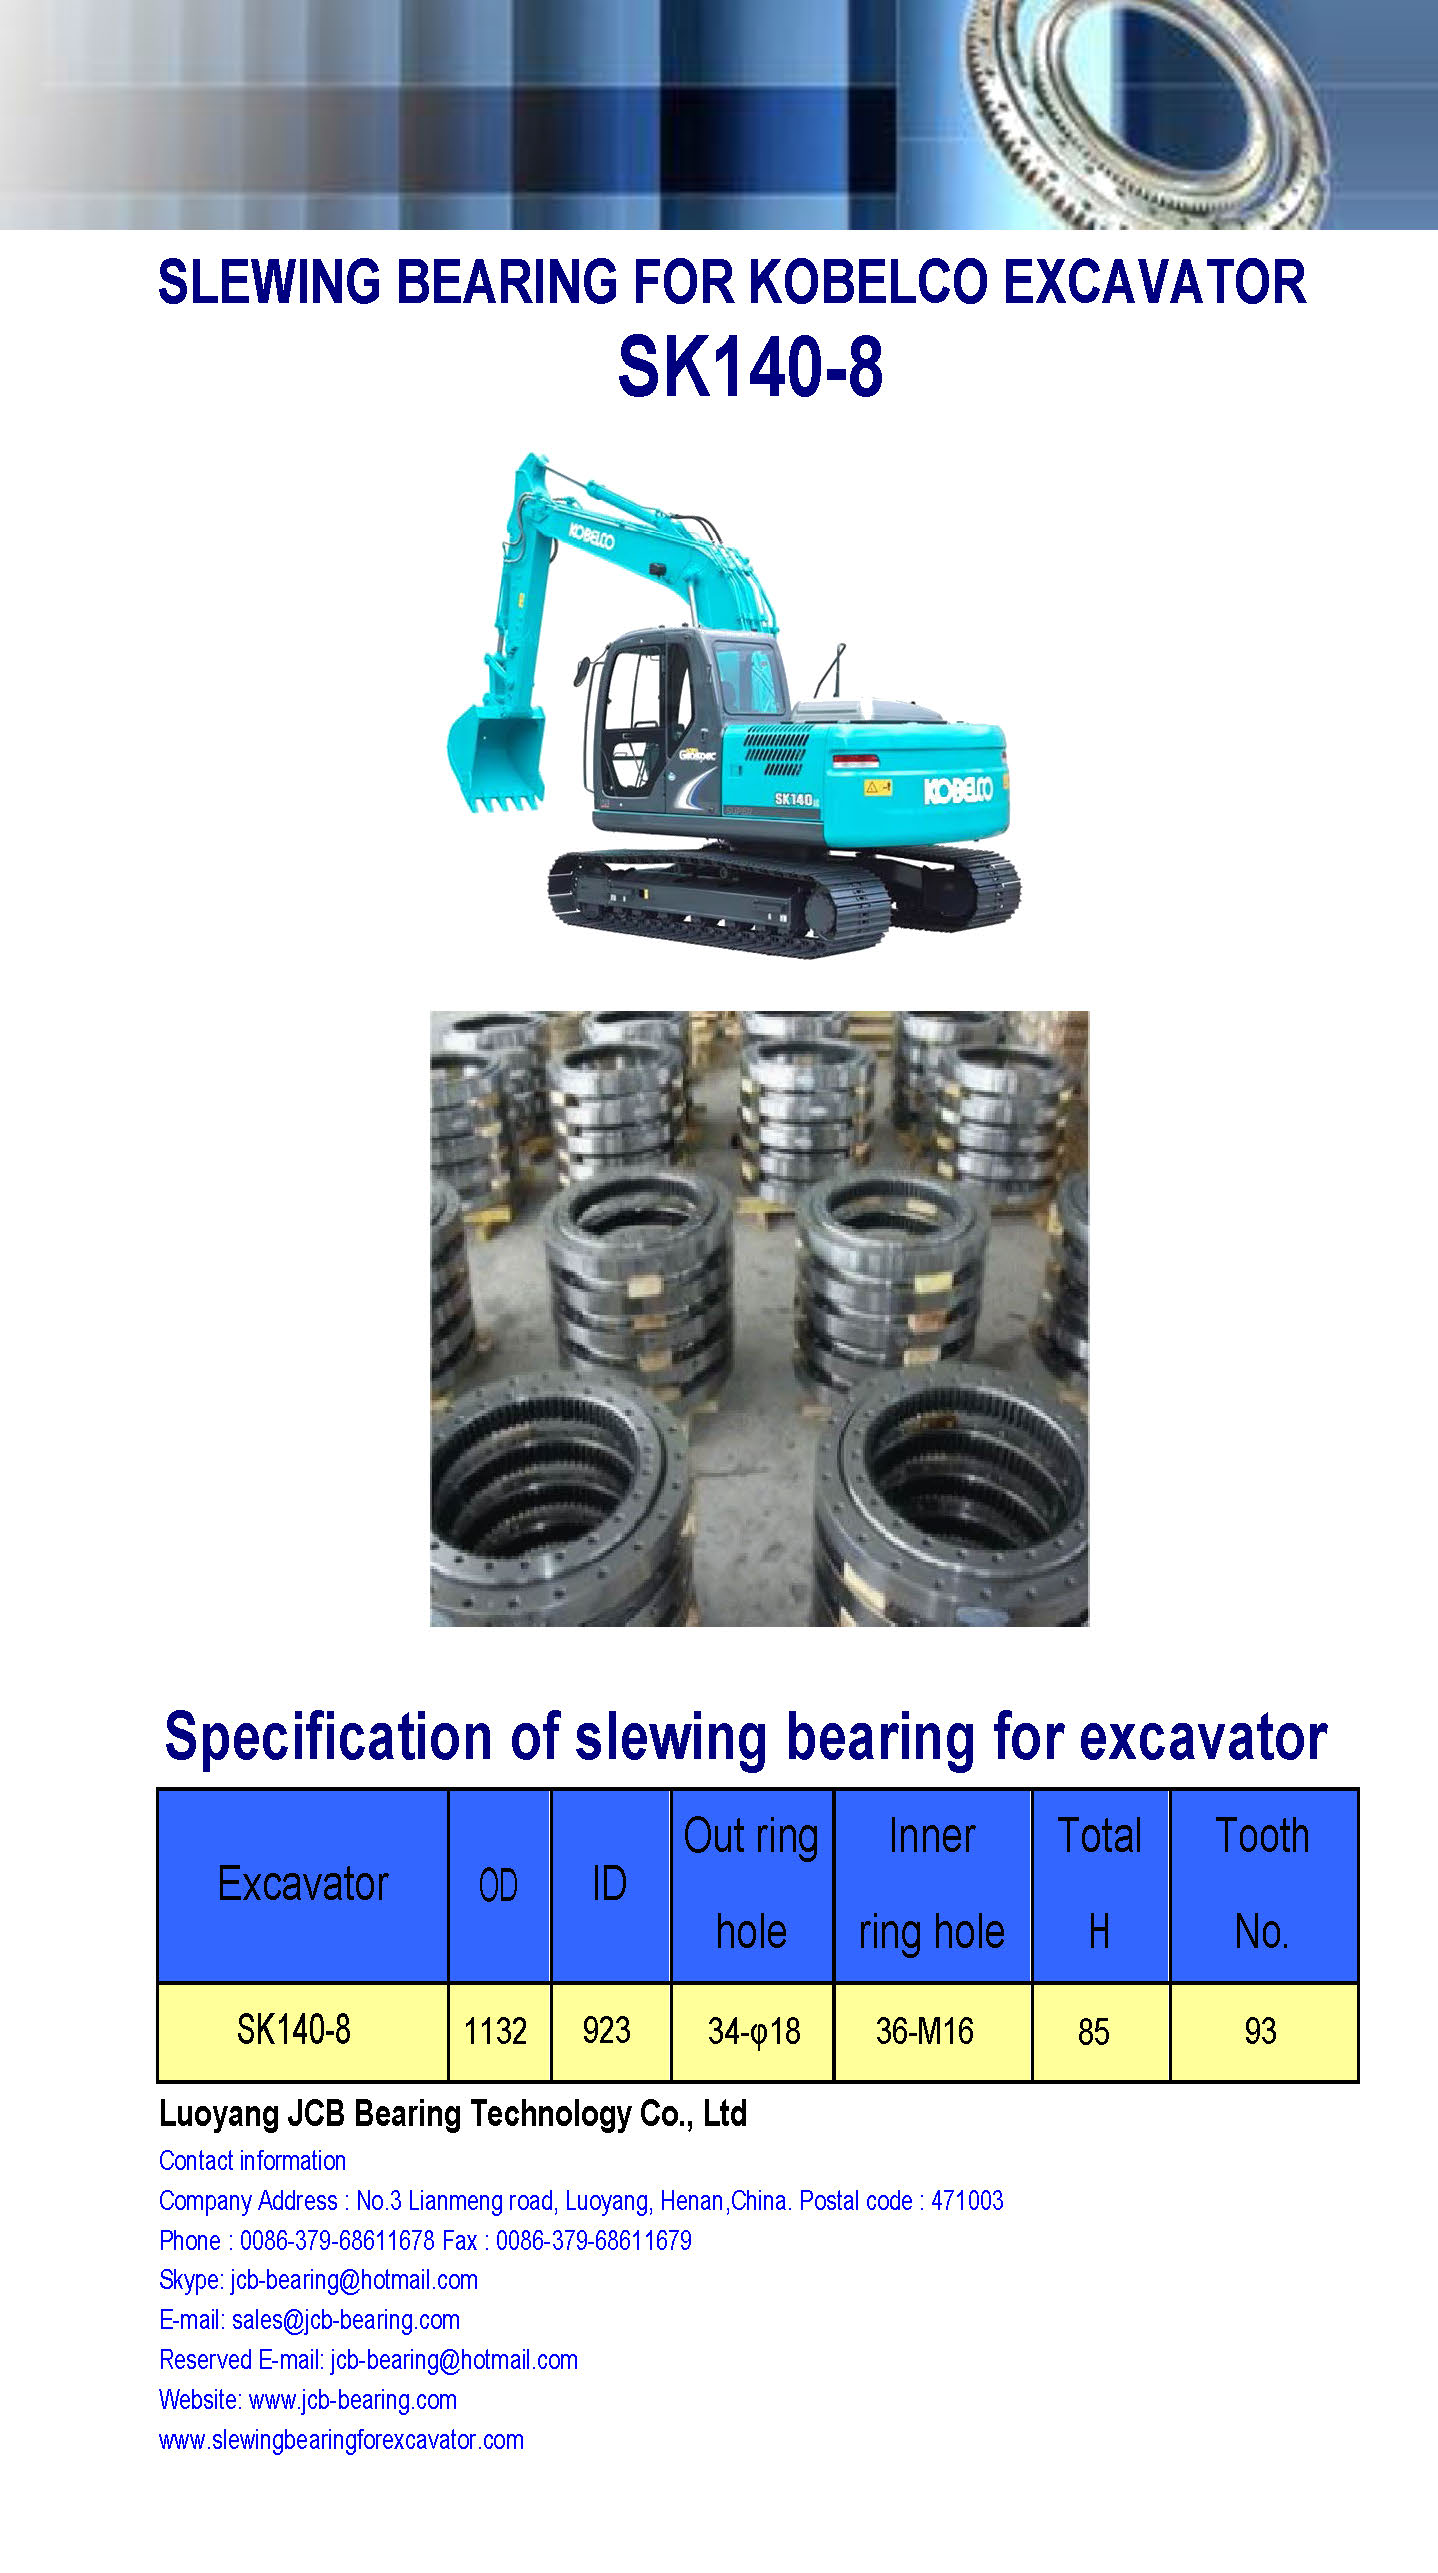 slewing bearing for kobelco excavator SK140-8 (swing bearing)